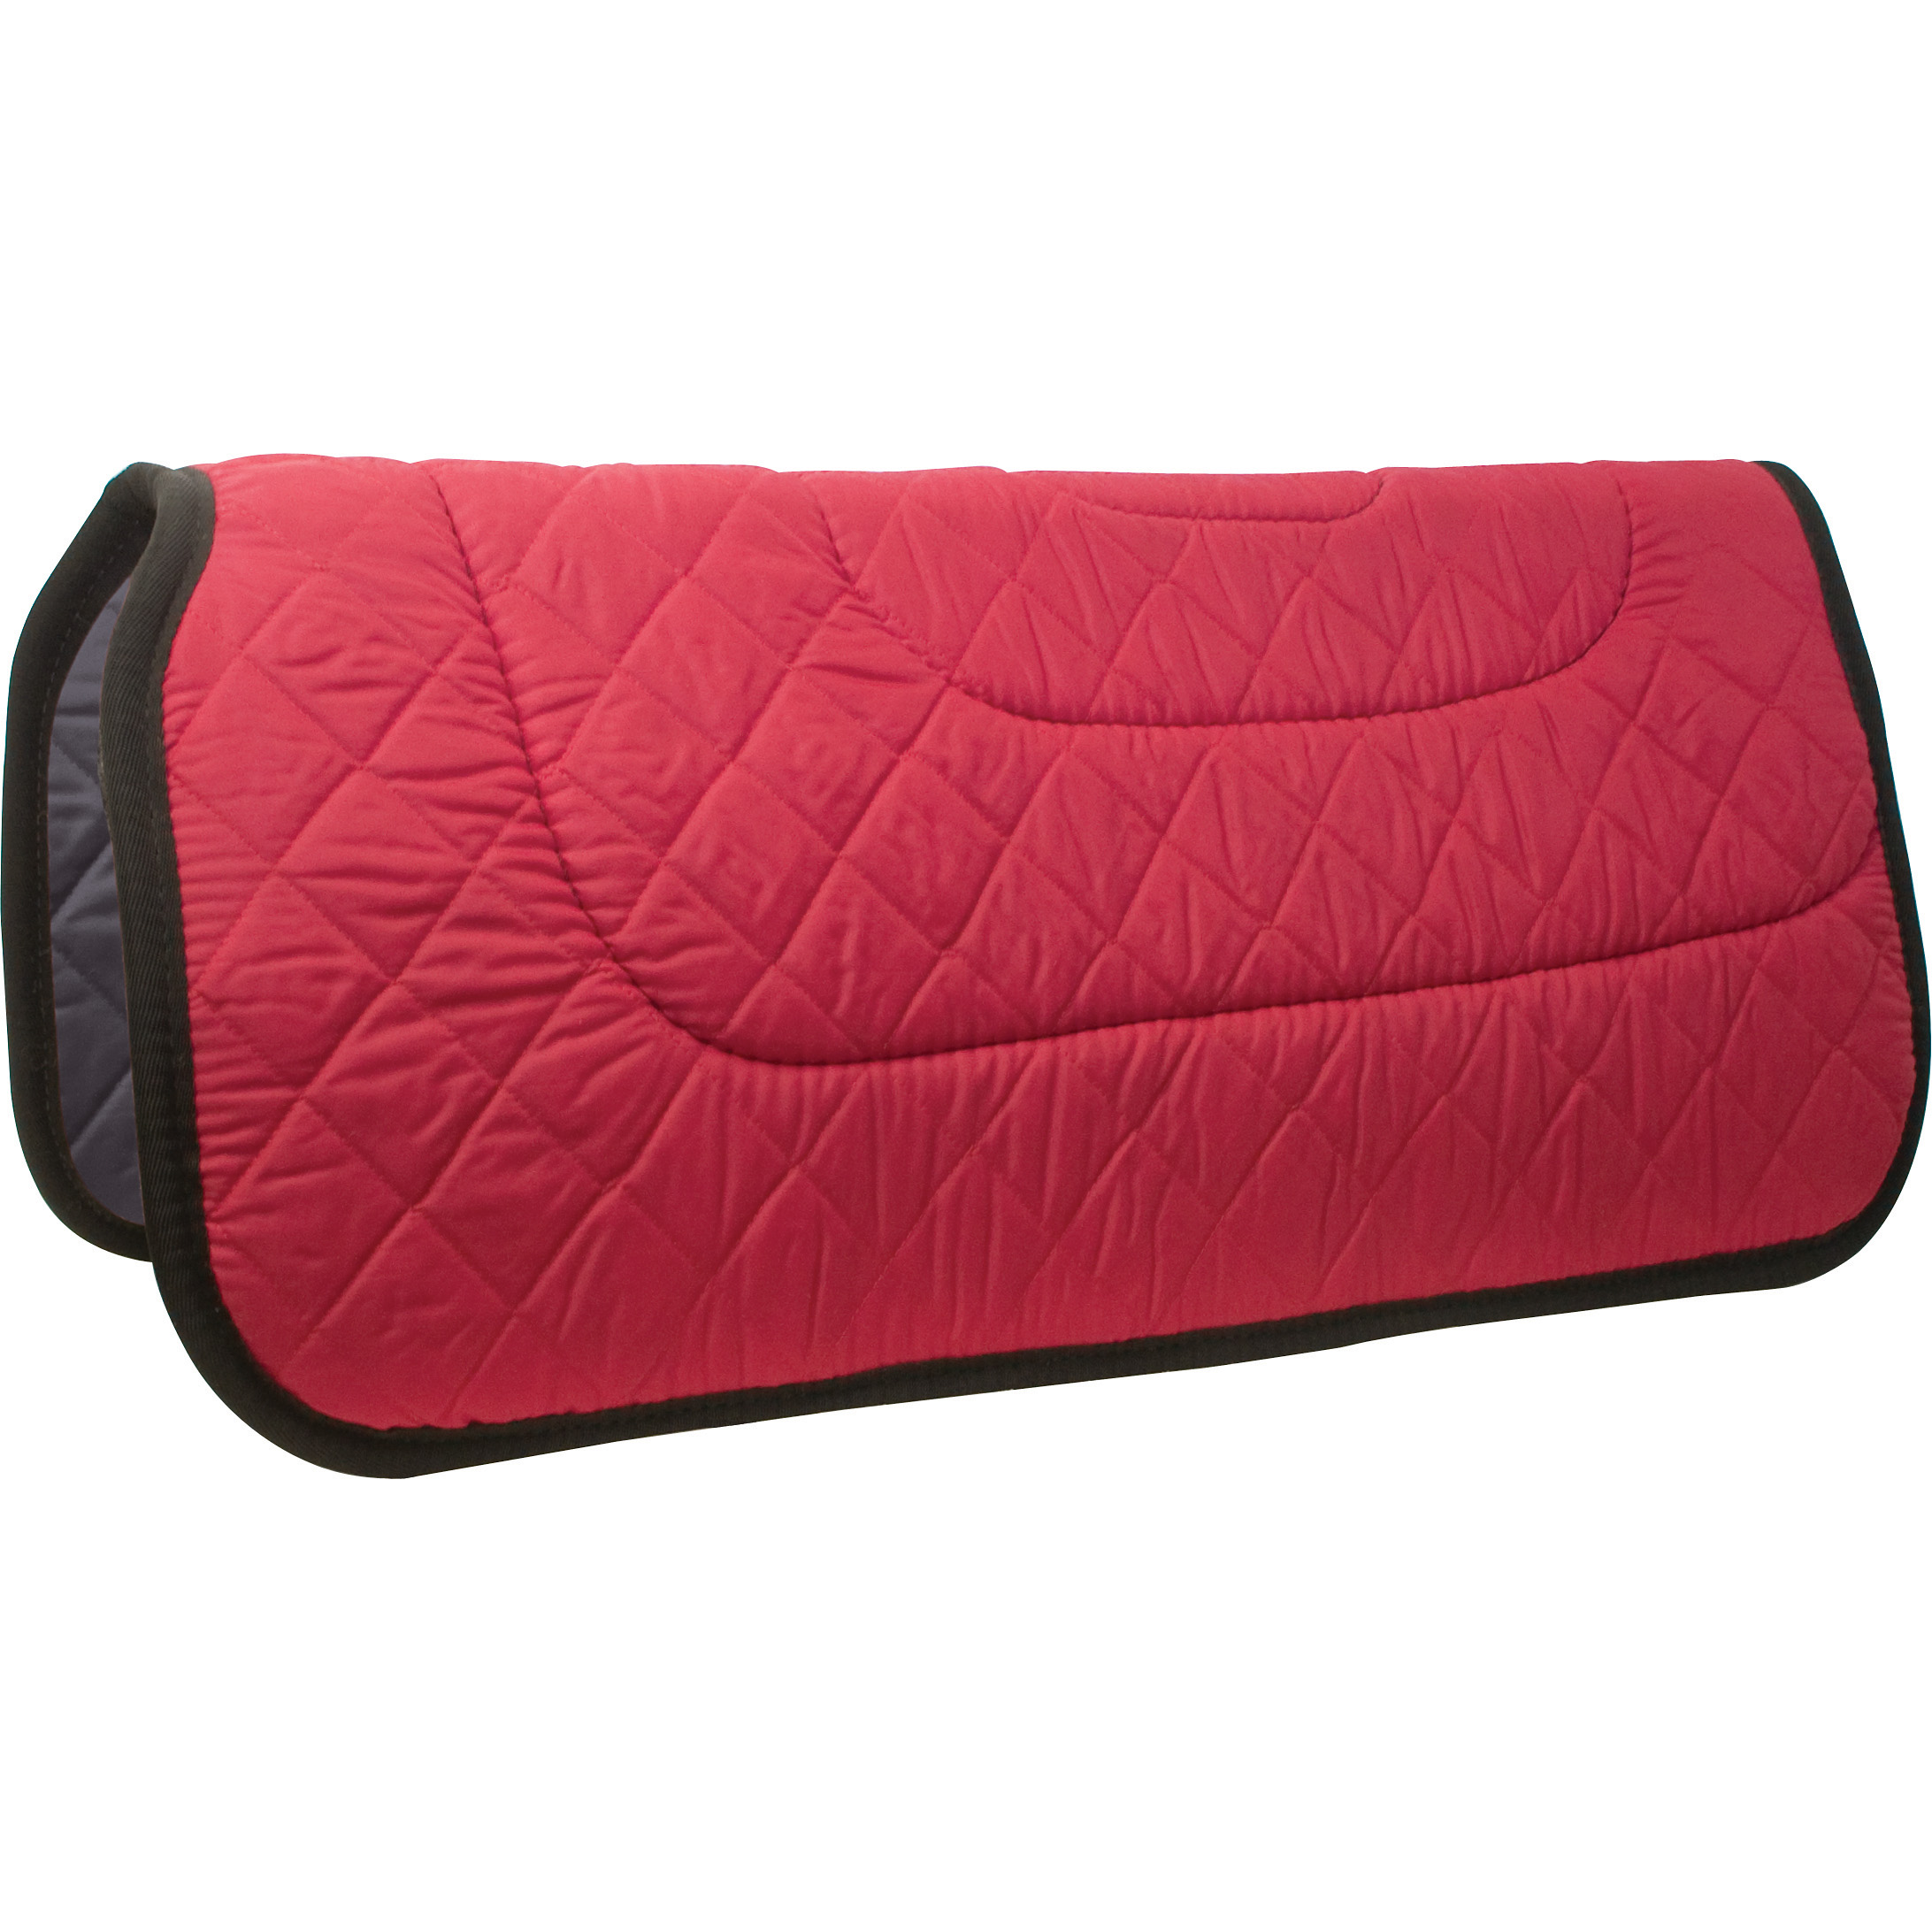 ABETTA Reversible Quilted Saddle Pad